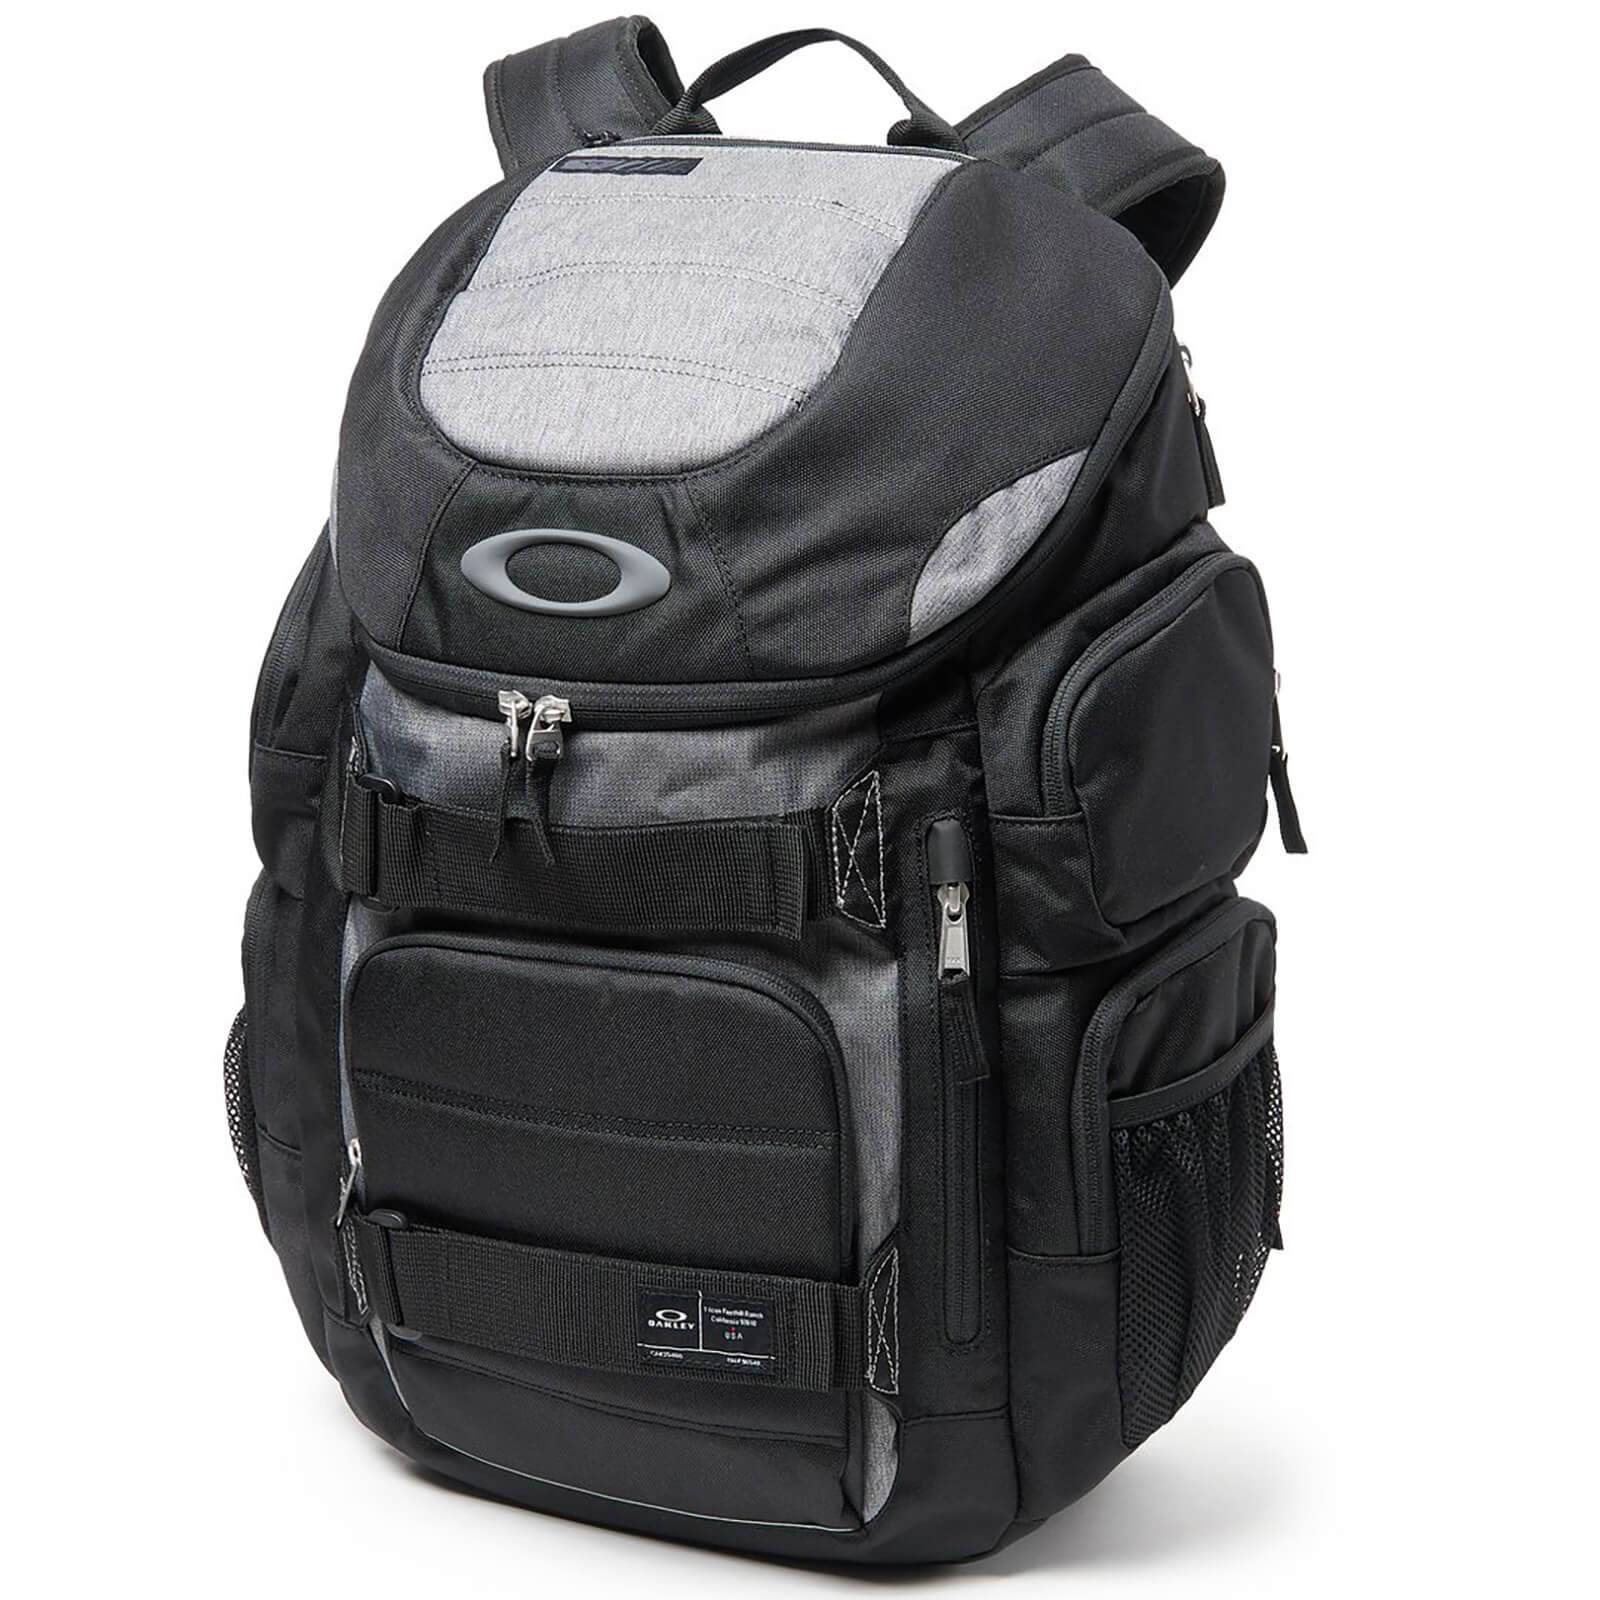 Oakley Enduro 2.0 Backpack - Blackout - 30L